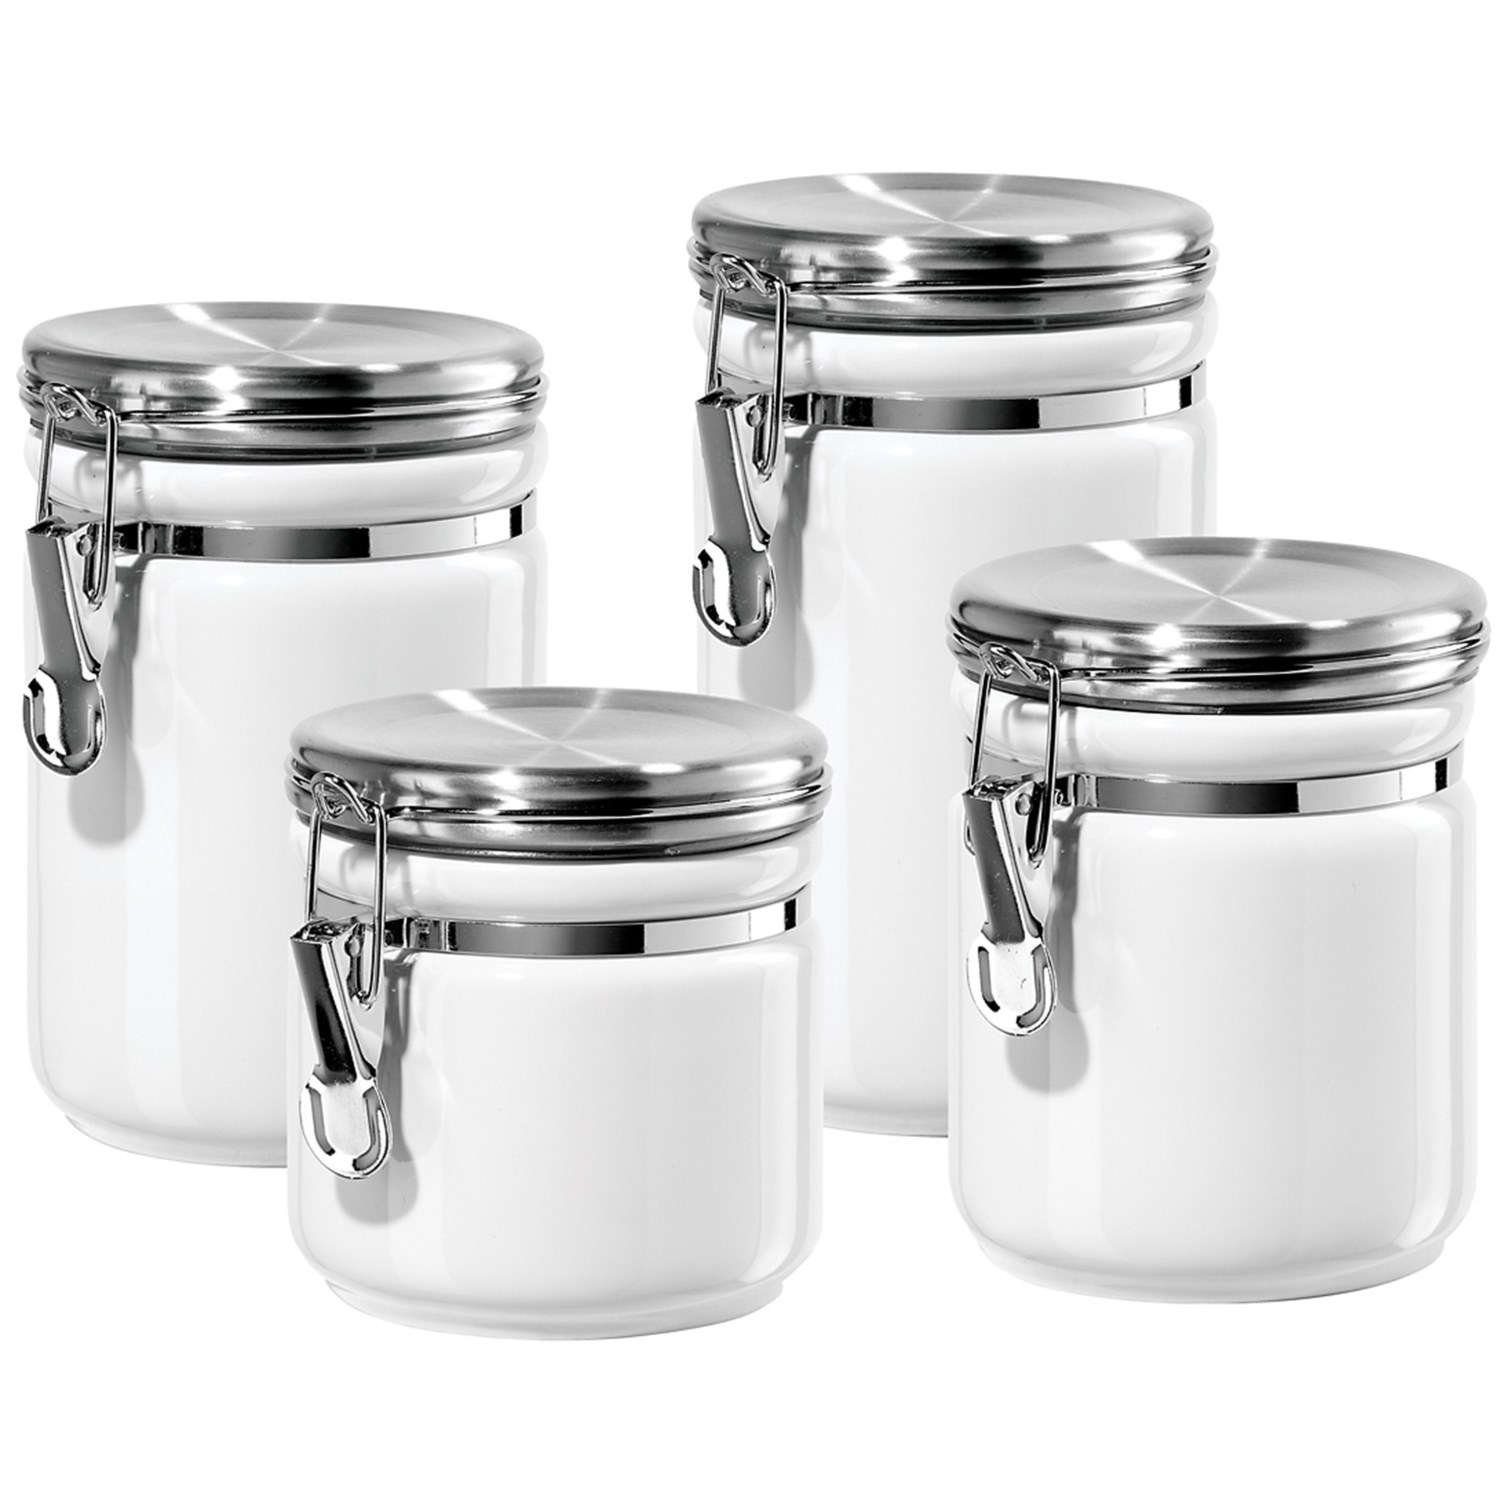 oggi kitchen canisters oggi ceramic canister set with stainless steel lids 4 piece save 26 907